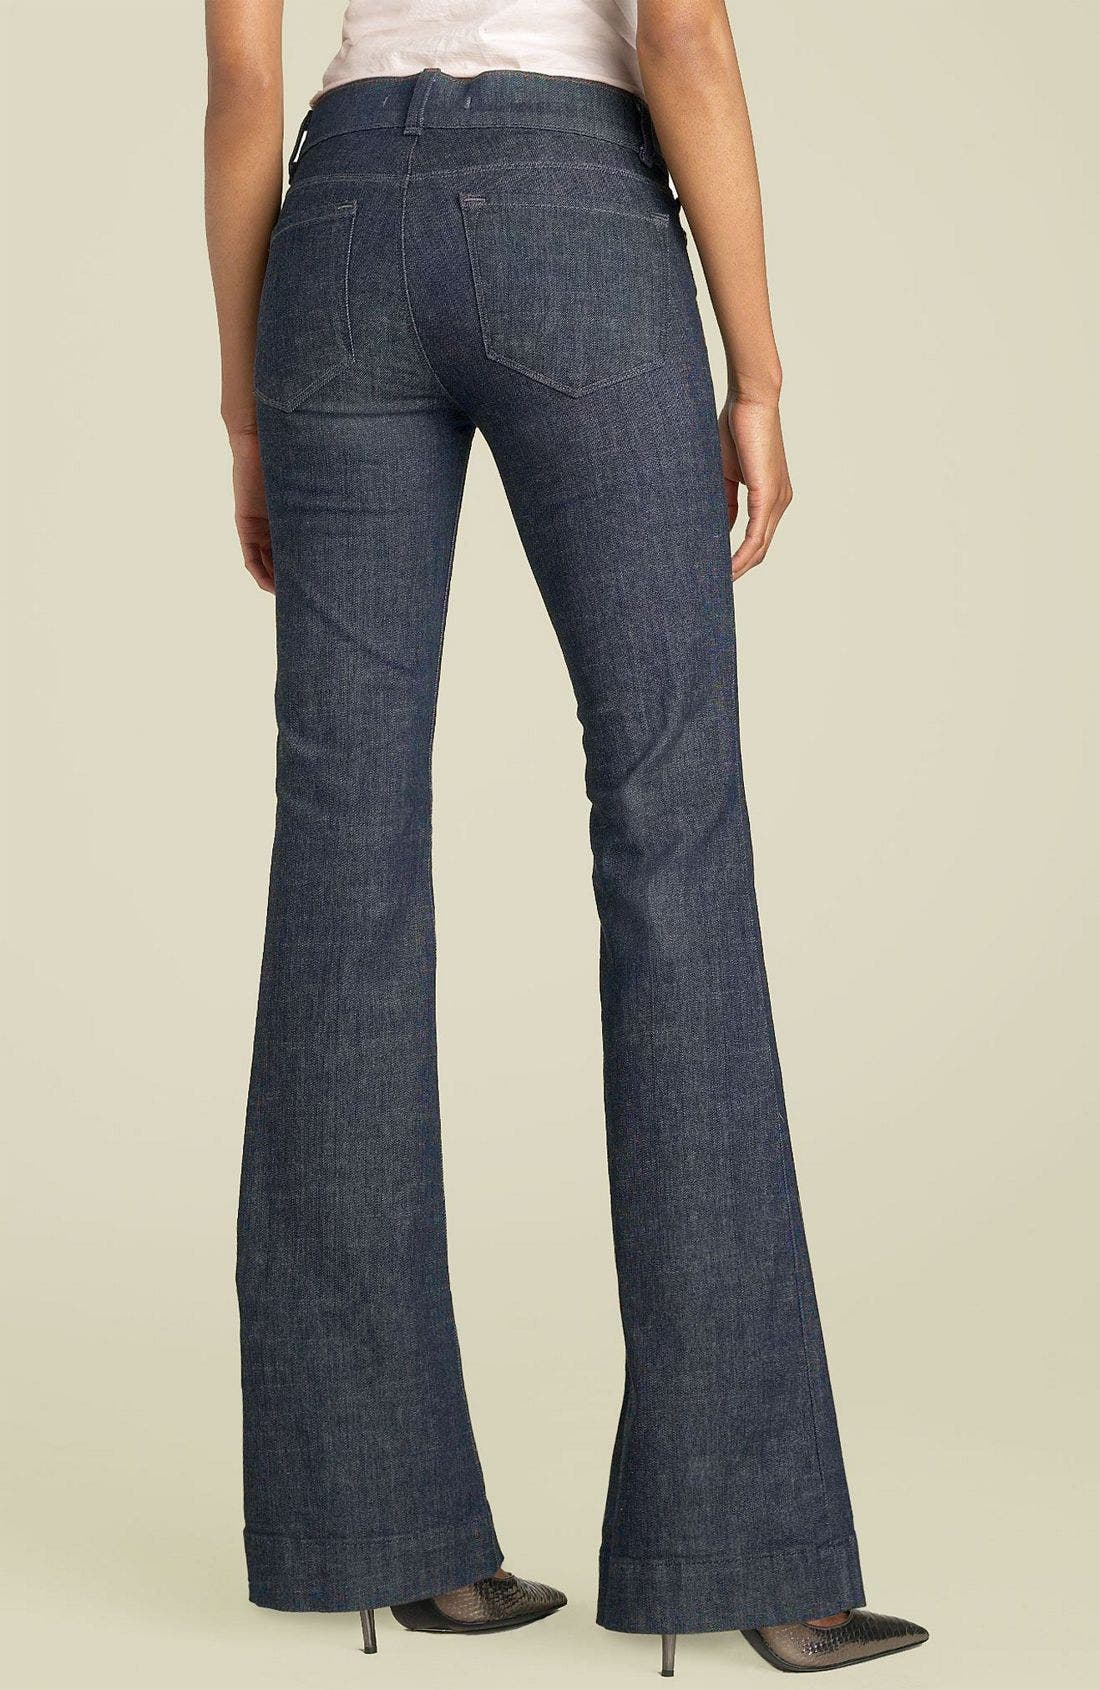 Main Image - J Brand 'Lovestory' Low Rise Bell Bottom Stretch Jeans (Miner)